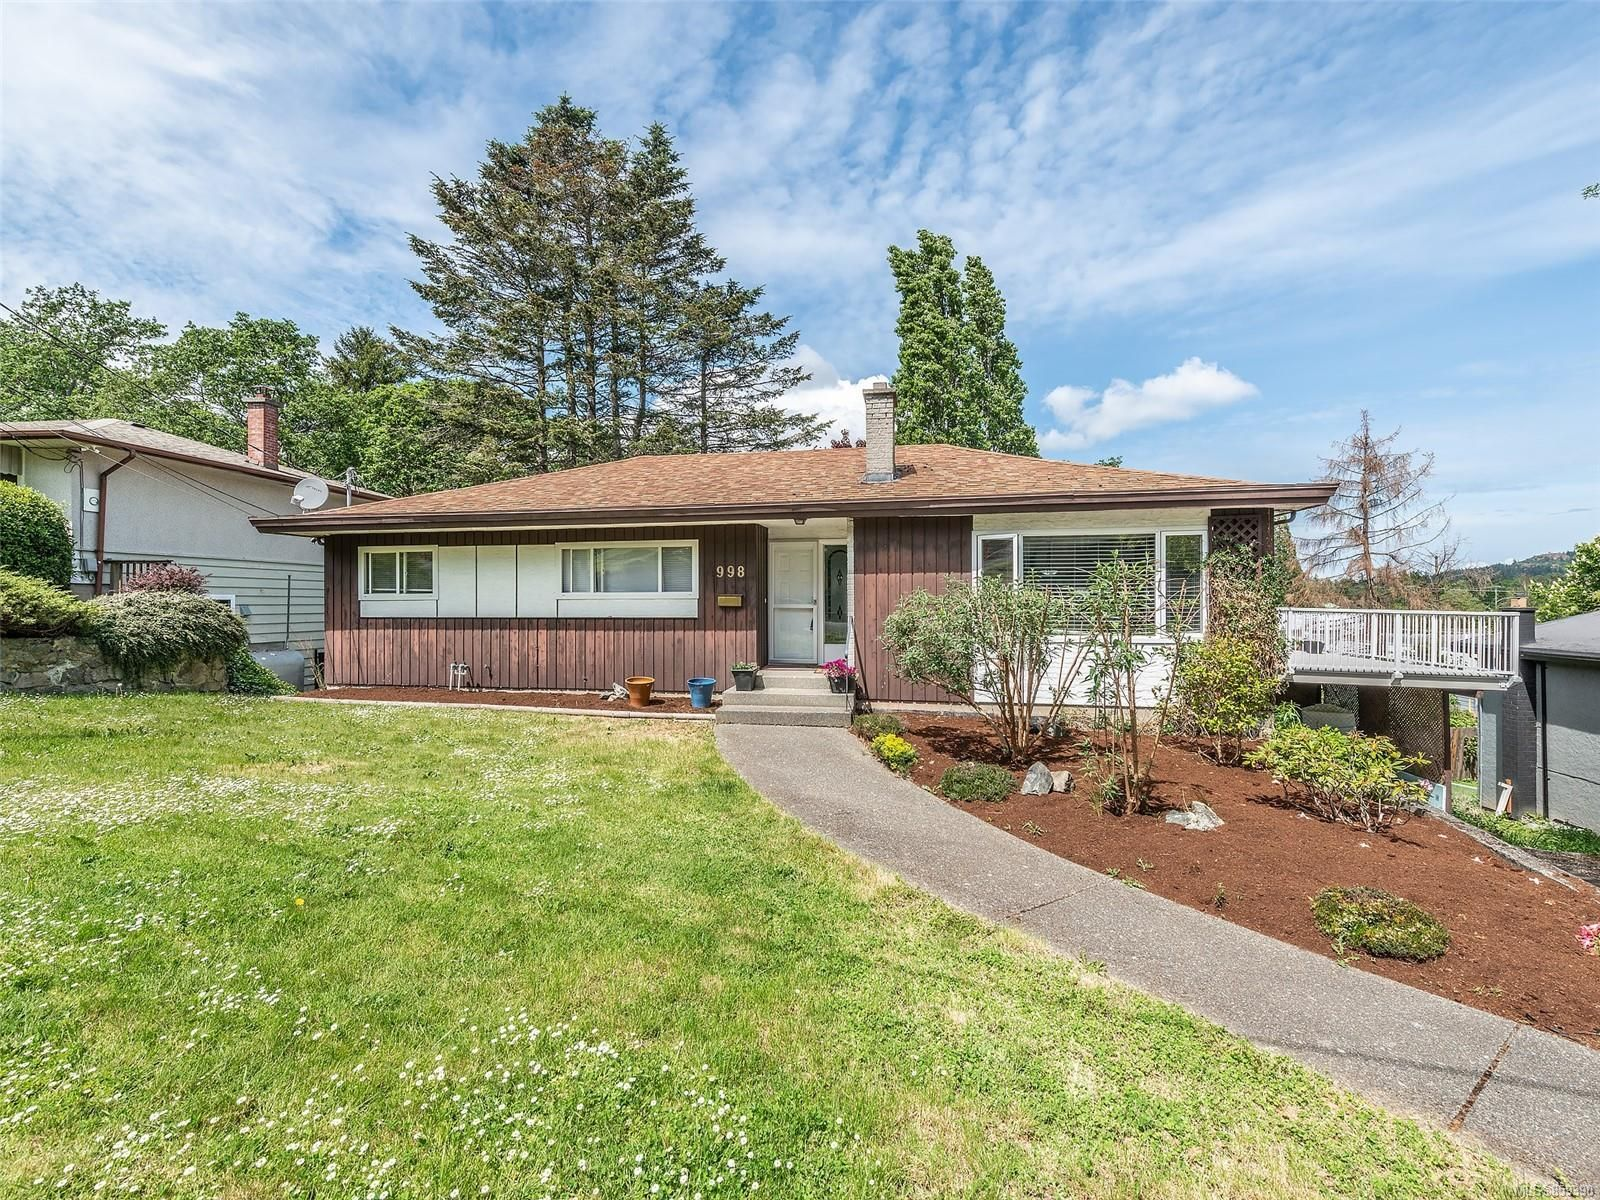 Main Photo: 998 Karen Cres in : SE Quadra House for sale (Saanich East)  : MLS®# 859390